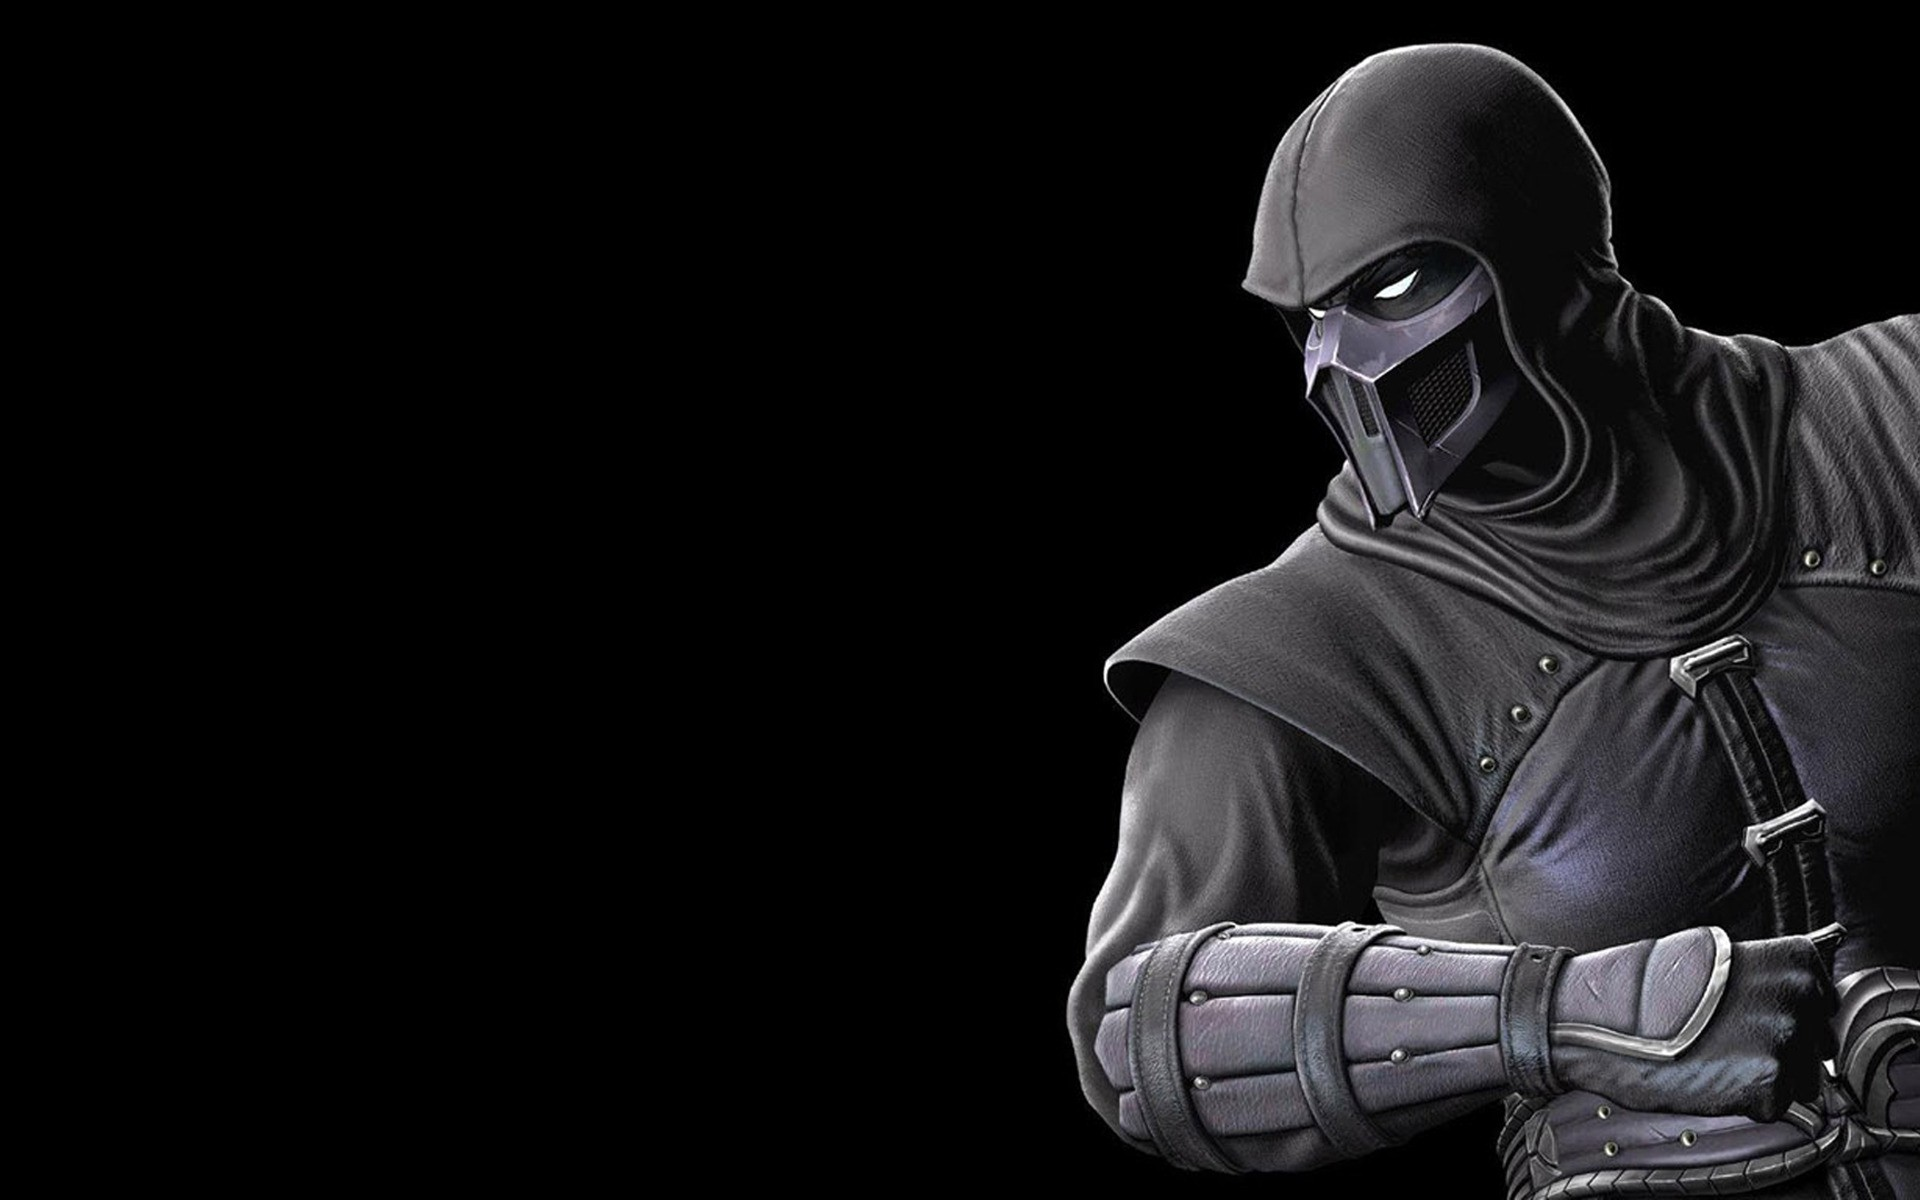 Wallpaper Mortal Kombat Scorpion   HD Wallpaper Expert 1920x1200